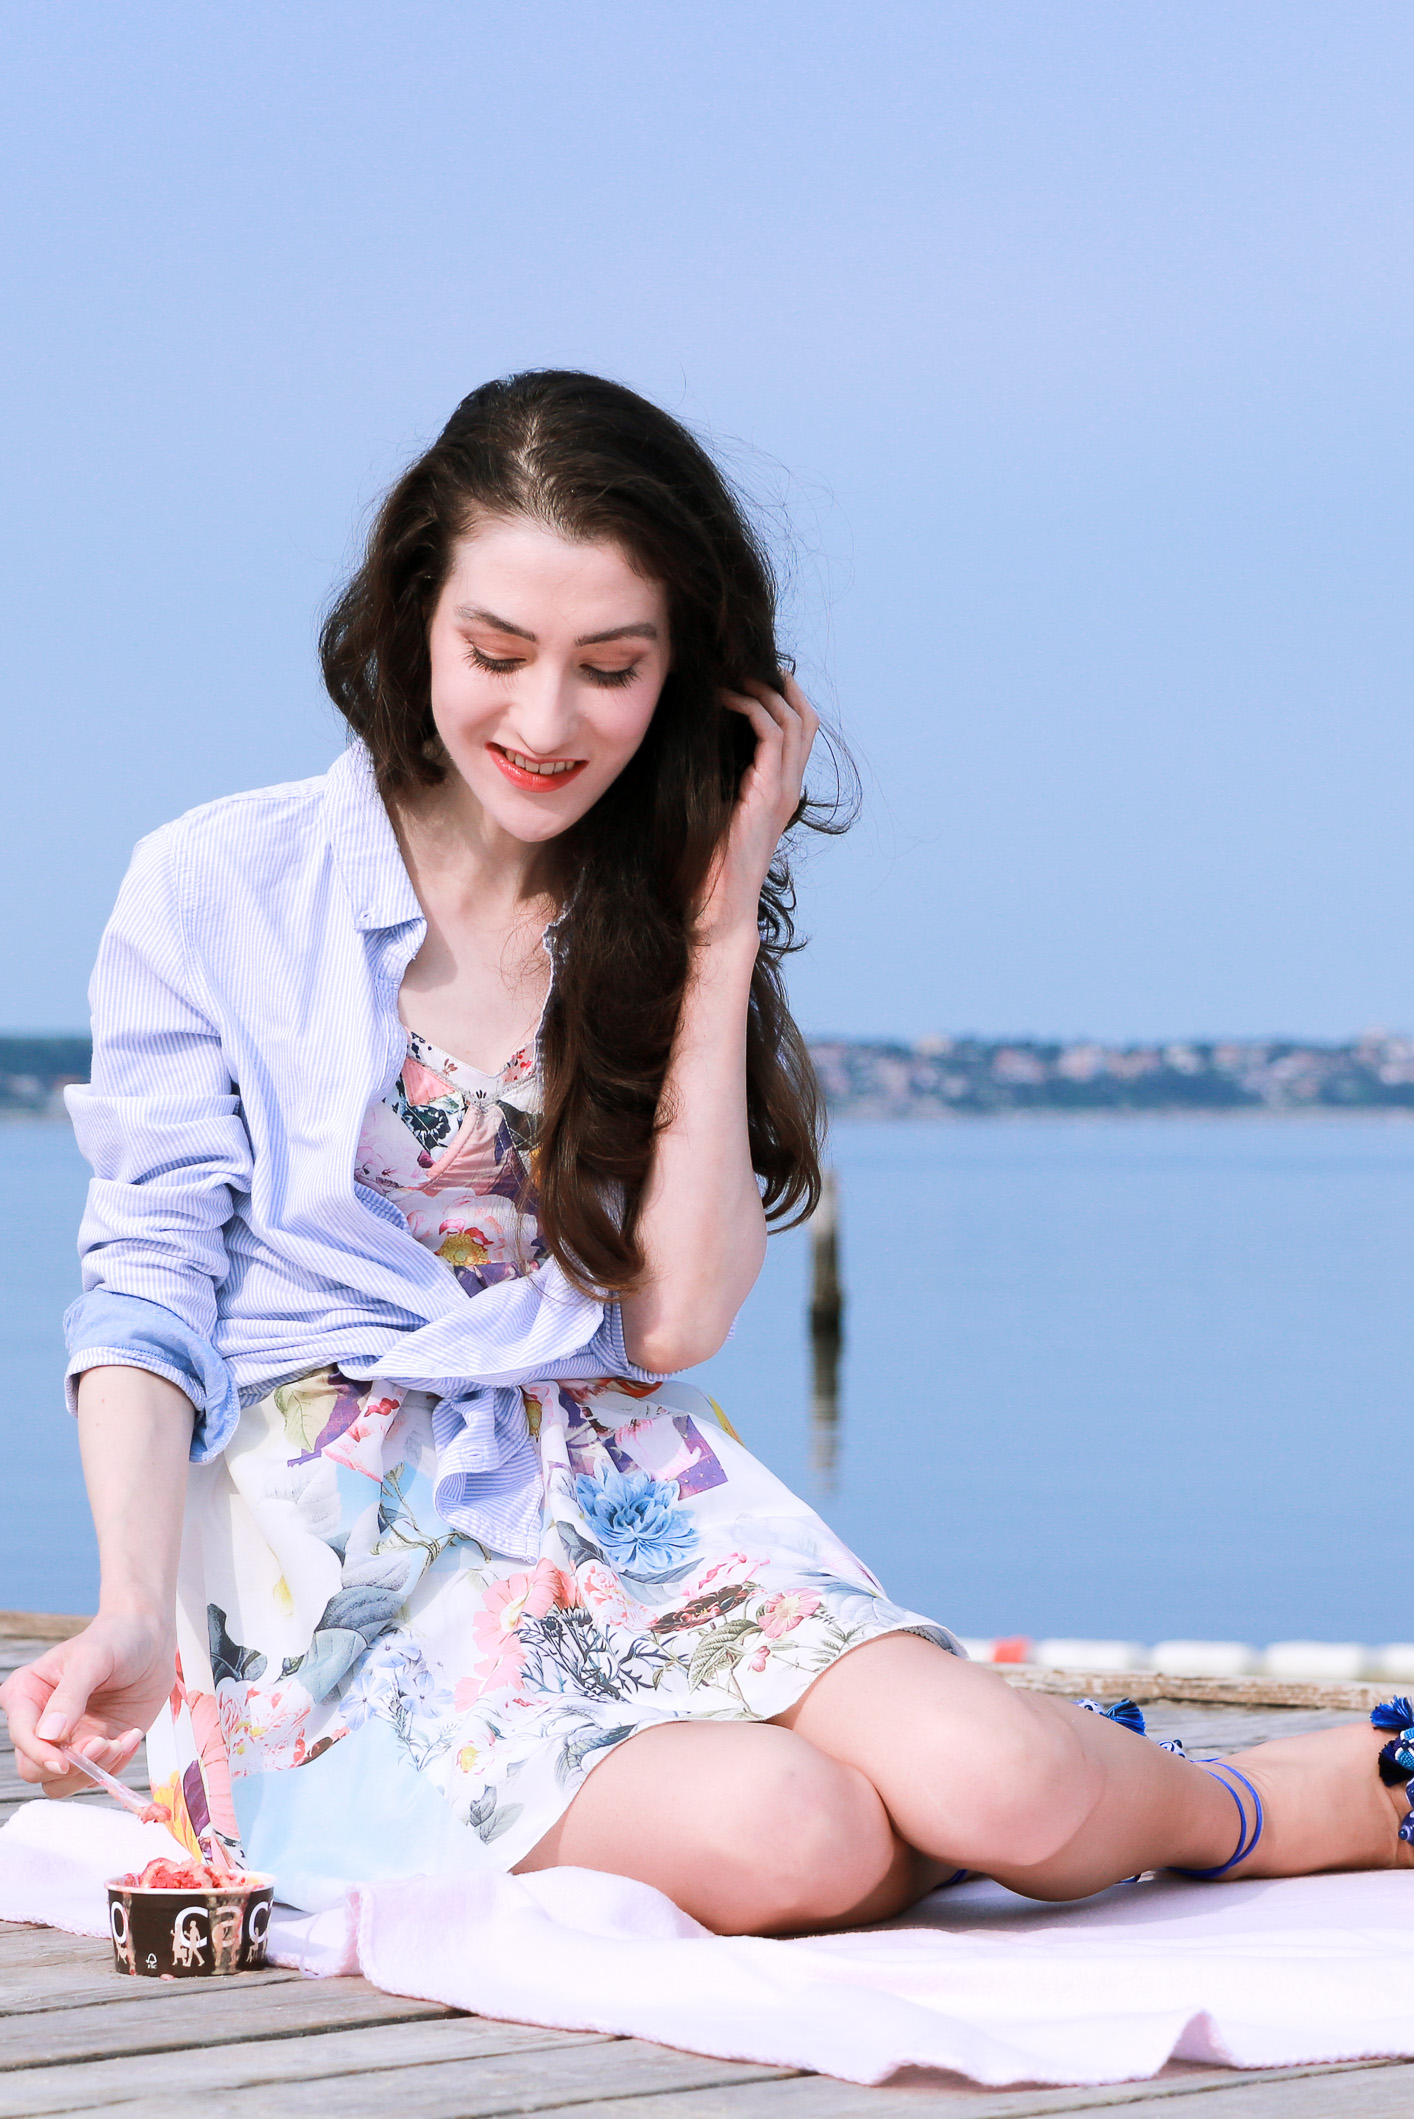 Fashion blogger Veronika Lipar of Brunette From Wall Street on her first summer picnic on the beach eating ice cream on the pink picnic blanket wearing floral summer dress, a shirt with a knot and raffia basket bag